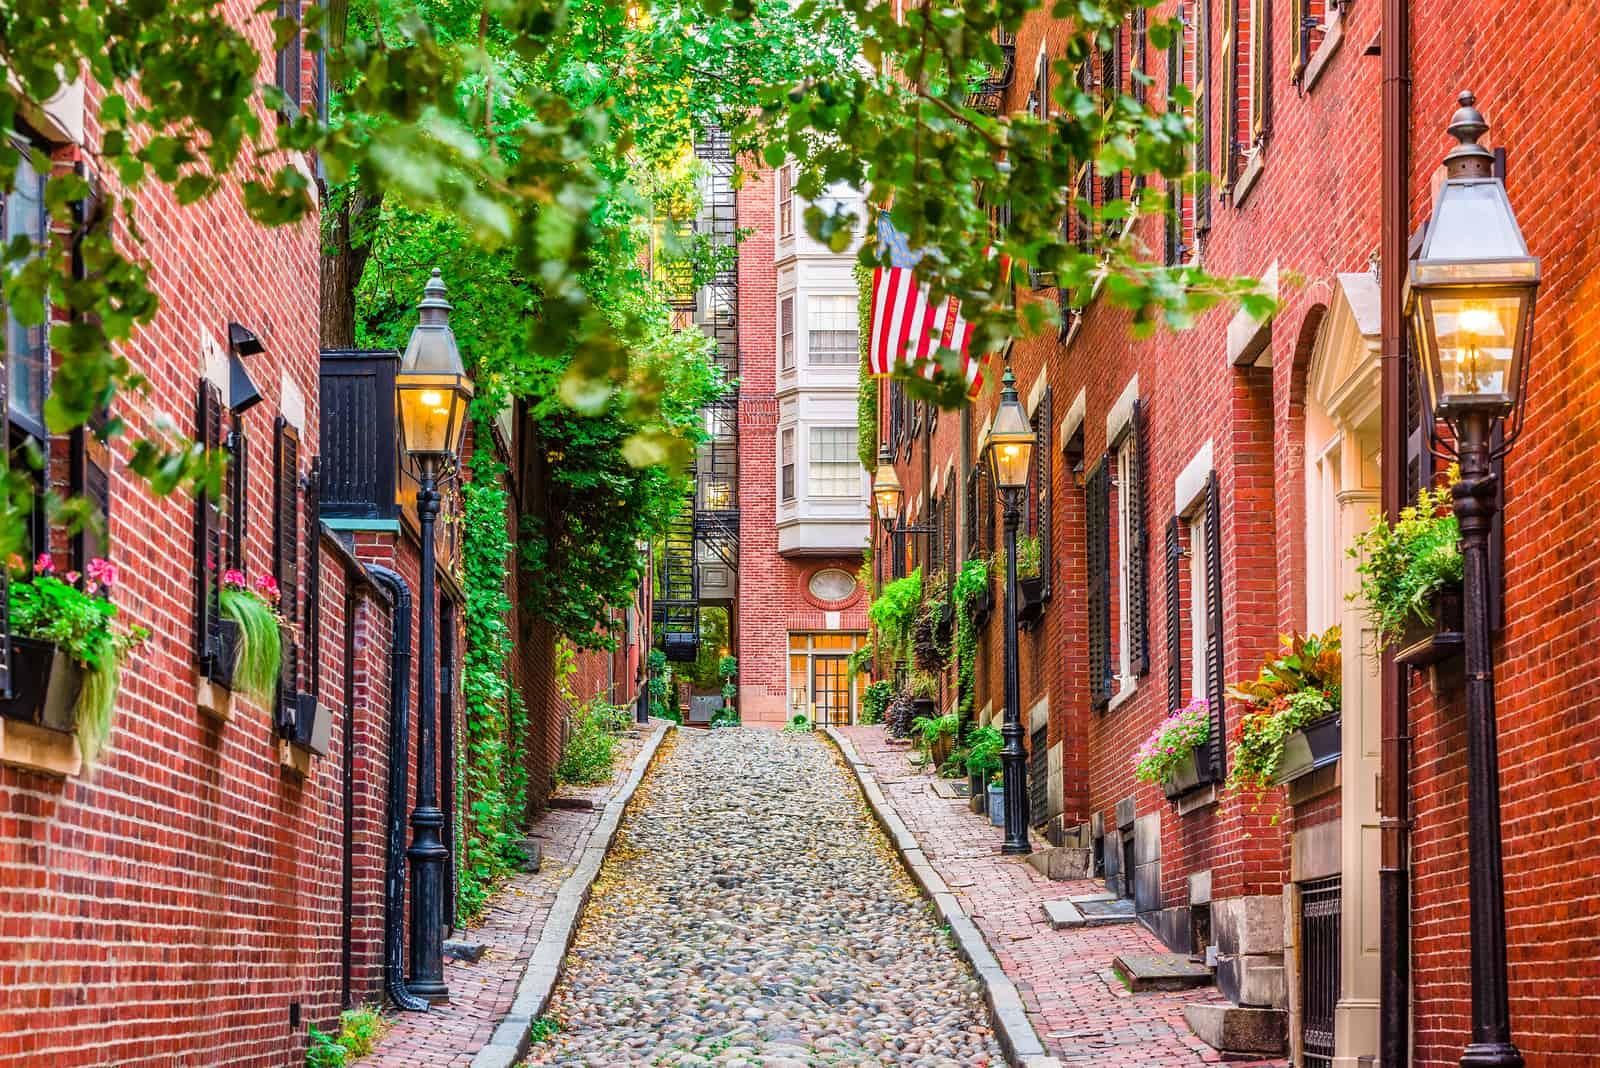 where to stay in boston ma - image of quaint chestnut street in boston, a narrow cobblestone lane lined by red brick buildings